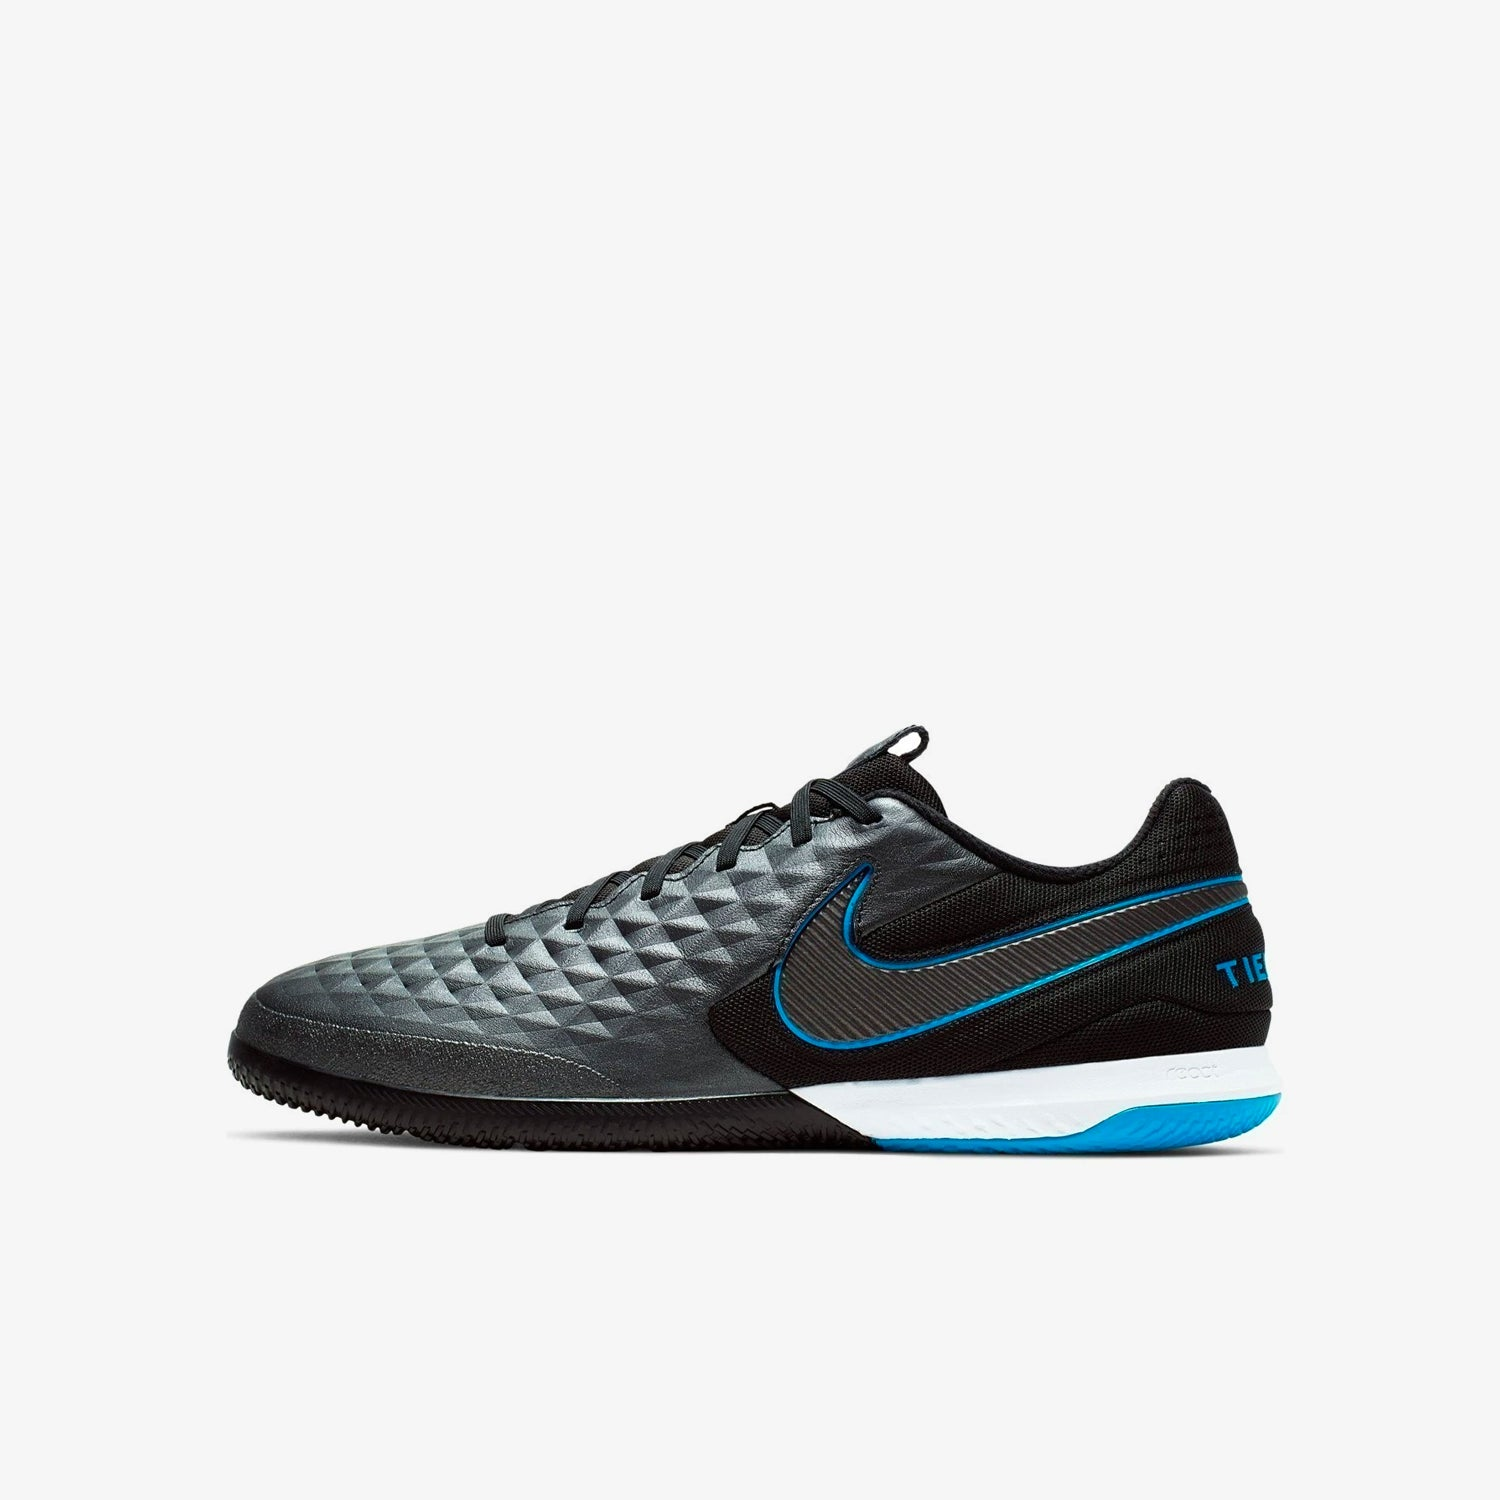 React Legend 8 Pro Indoor Shoes - Black/Blue Hero